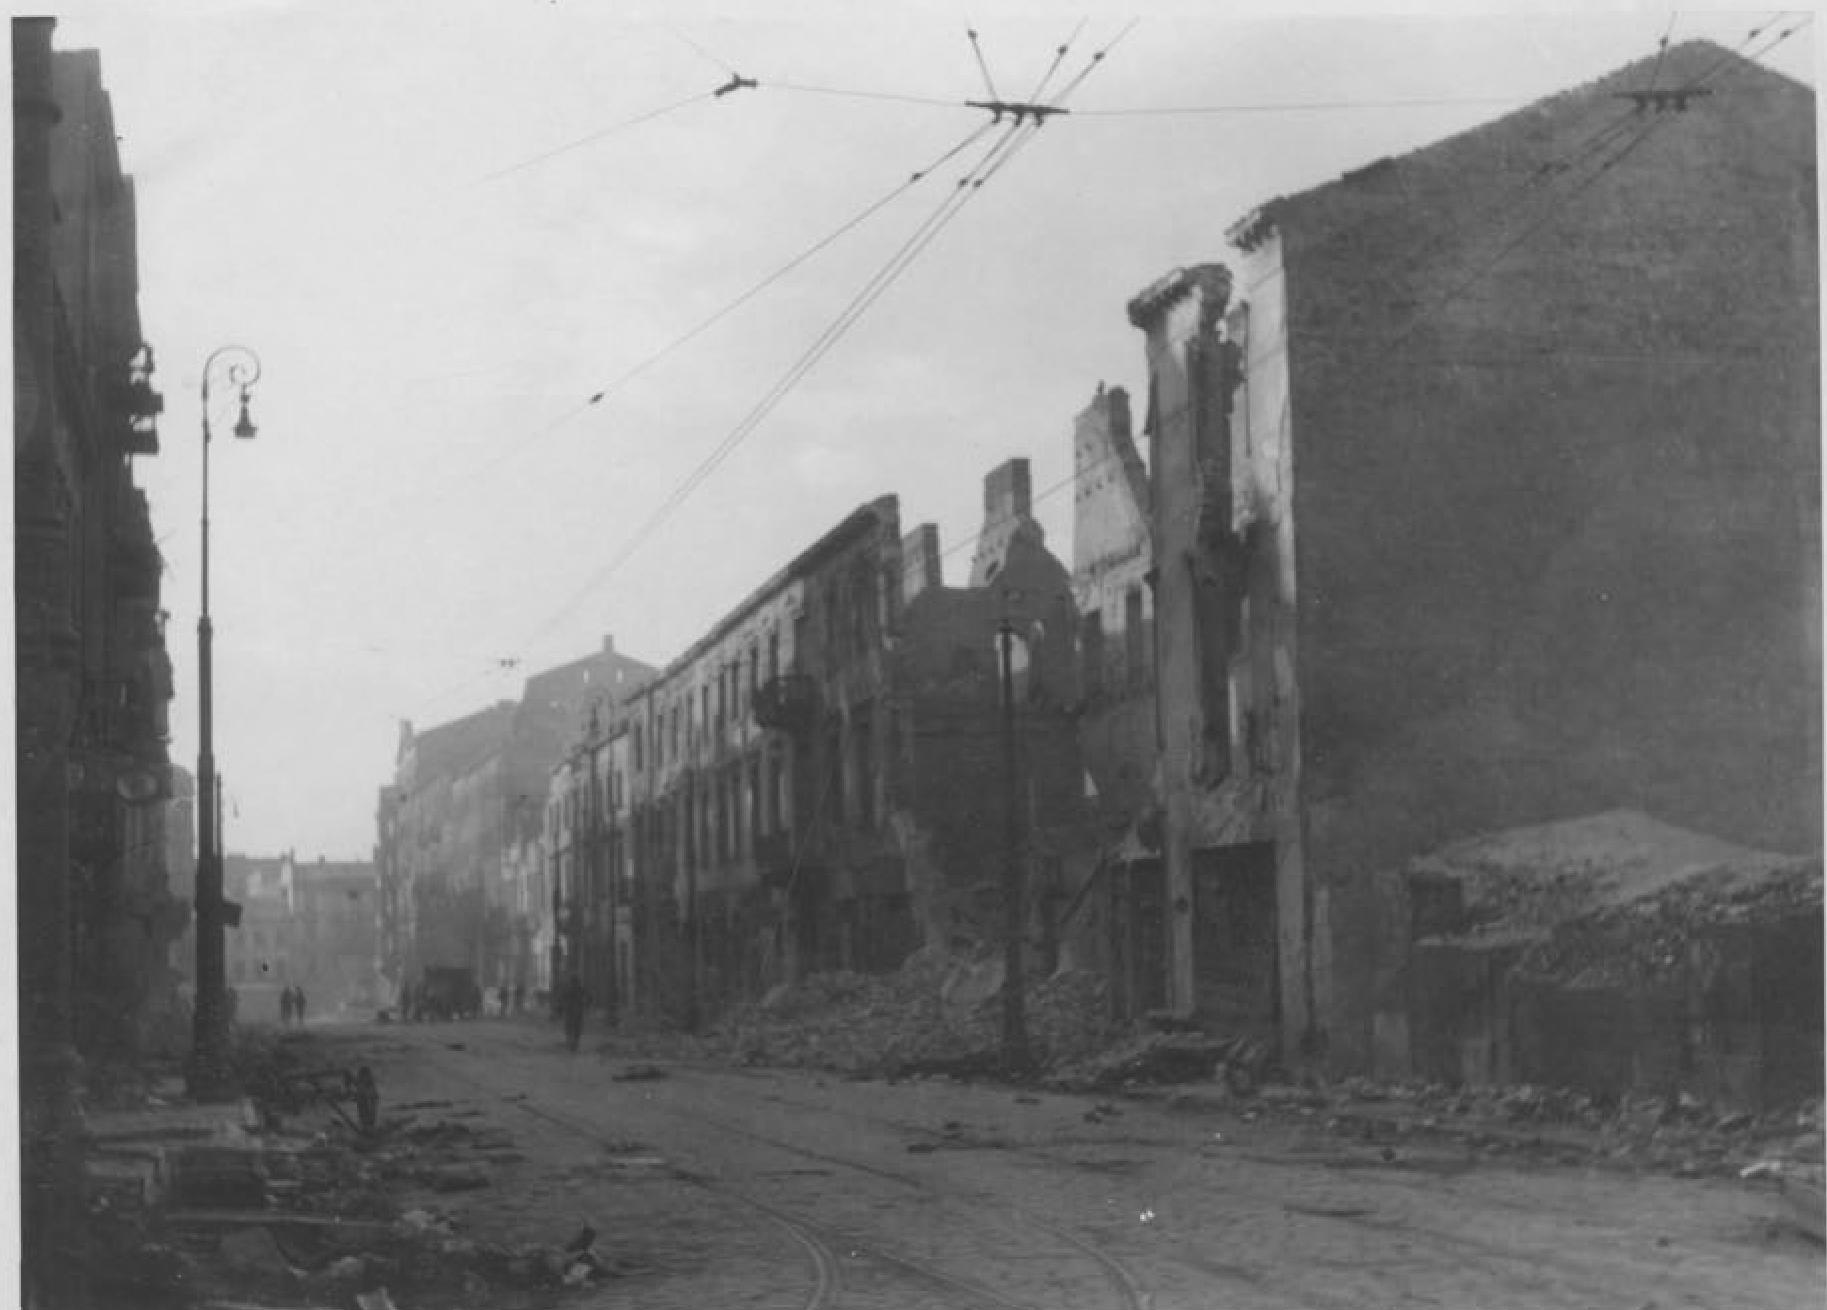 Stroop_Report_-_Warsaw_Ghetto_Uprising_-_IPN49